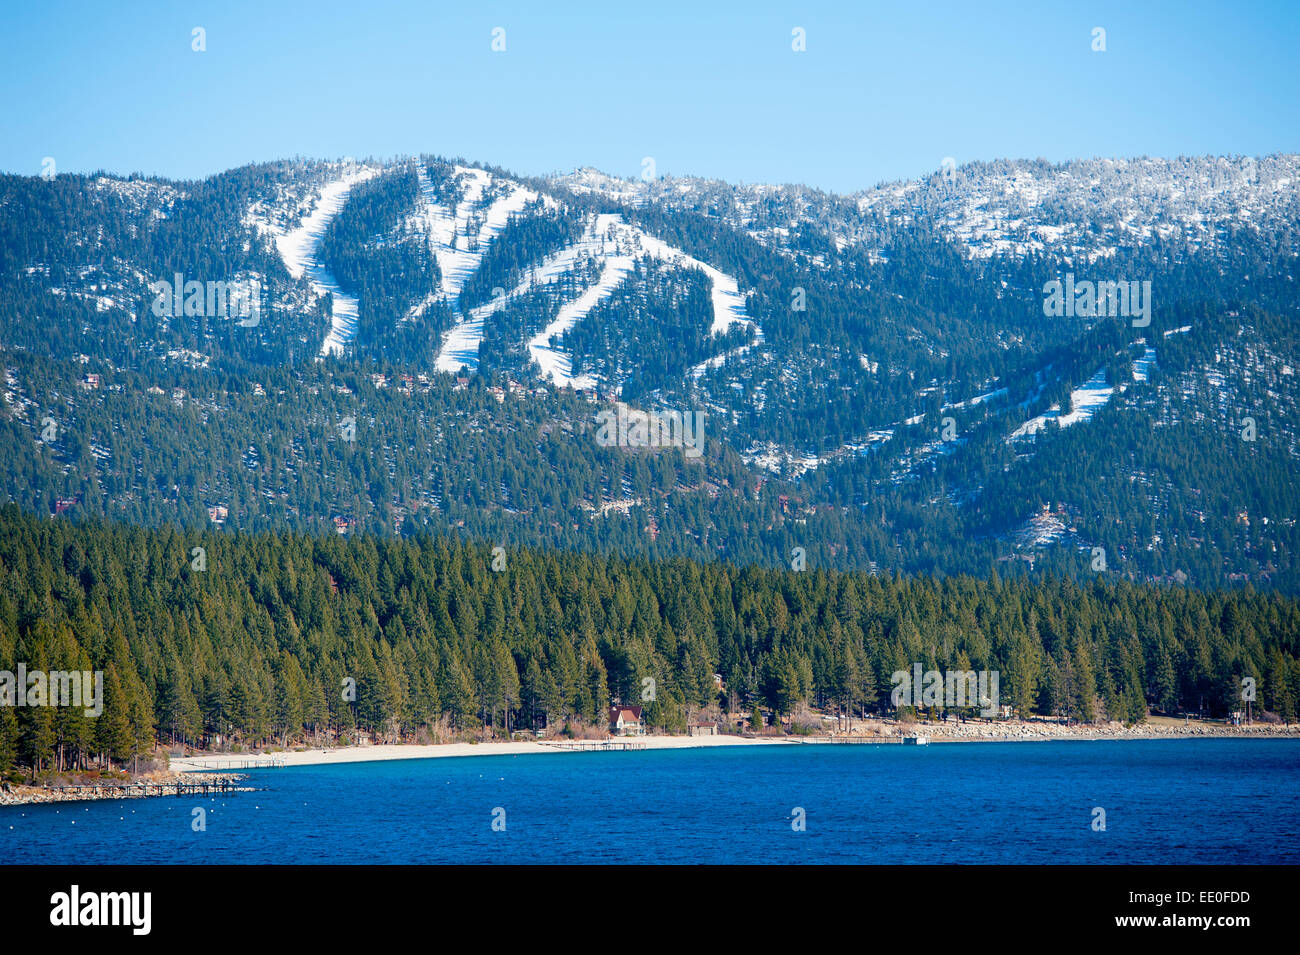 usa nevada nv lake tahoe winter view of incline village and the